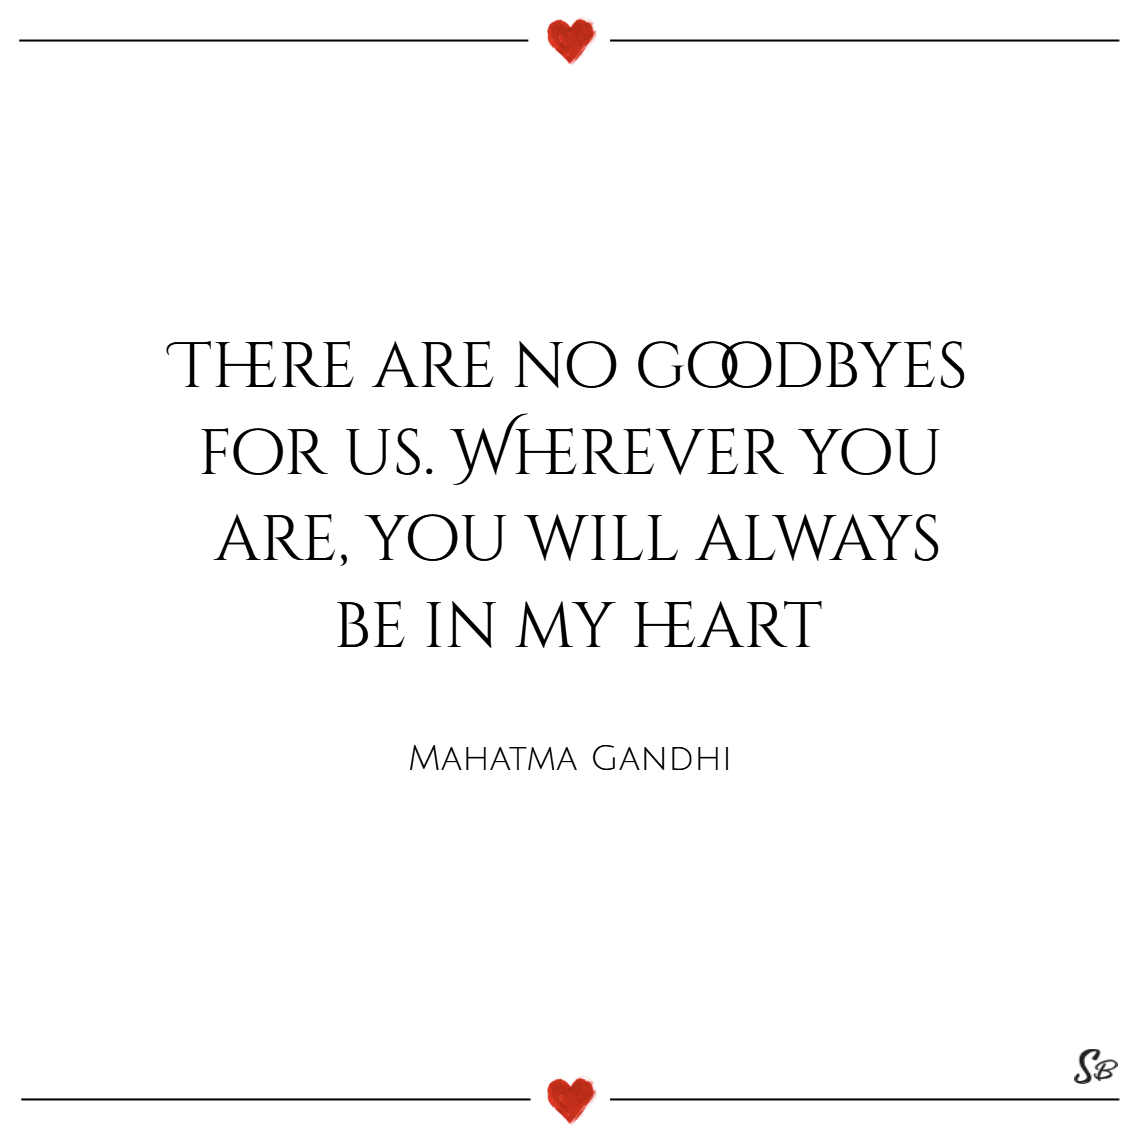 There are no goodbyes for us. wherever you are, you will always be in my heart. – mahatma gandhi